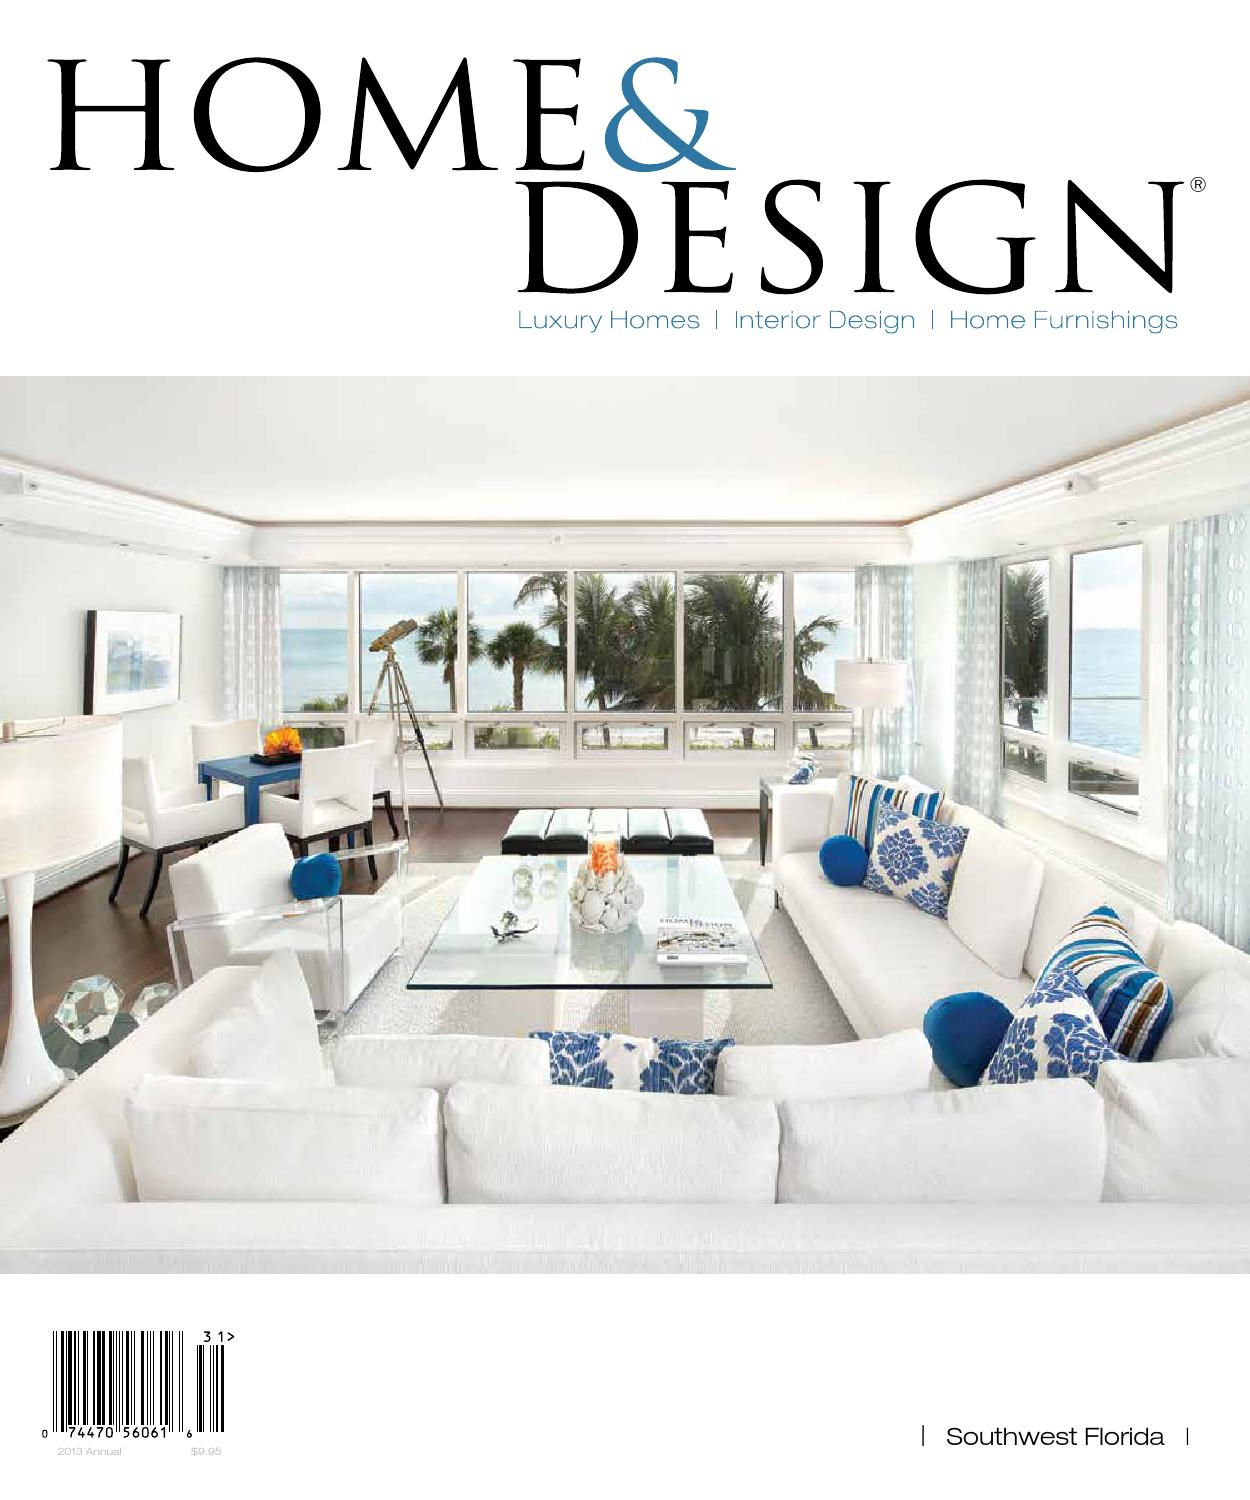 Issuu home design magazine annual resource guide for Home building magazines